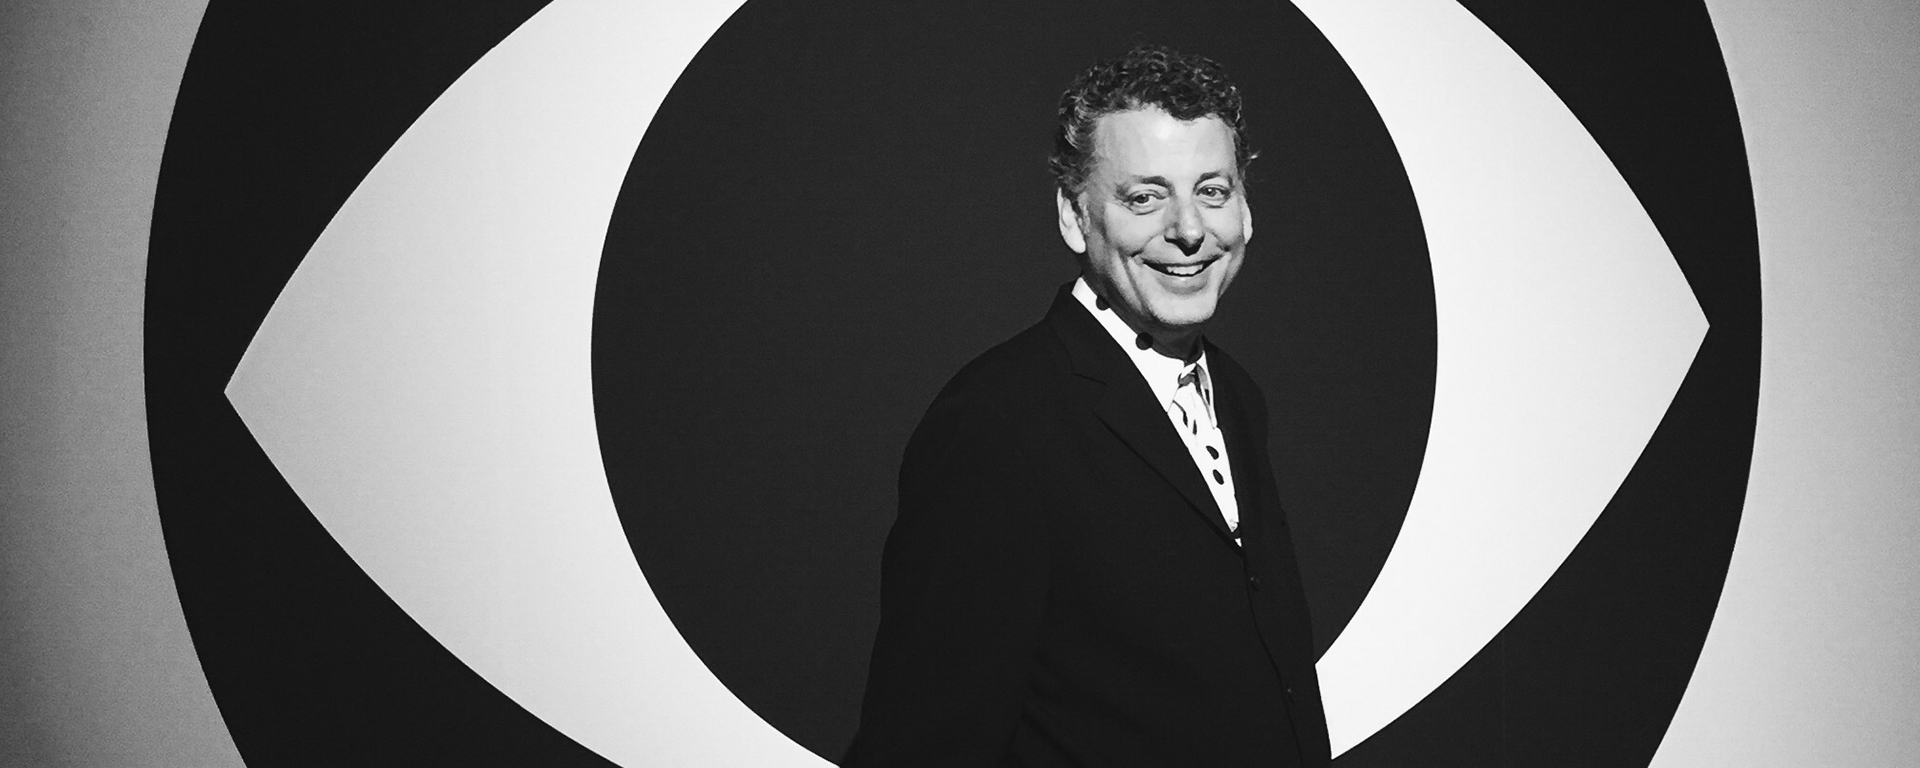 Black and white photograph of Maurice Berger, Chief Curator and research professor at UMBC's Center for Art, Design and Visual Culture, standing in front of a wall with a large eye-shaped graphic in the background. Photograph by James Estrin.